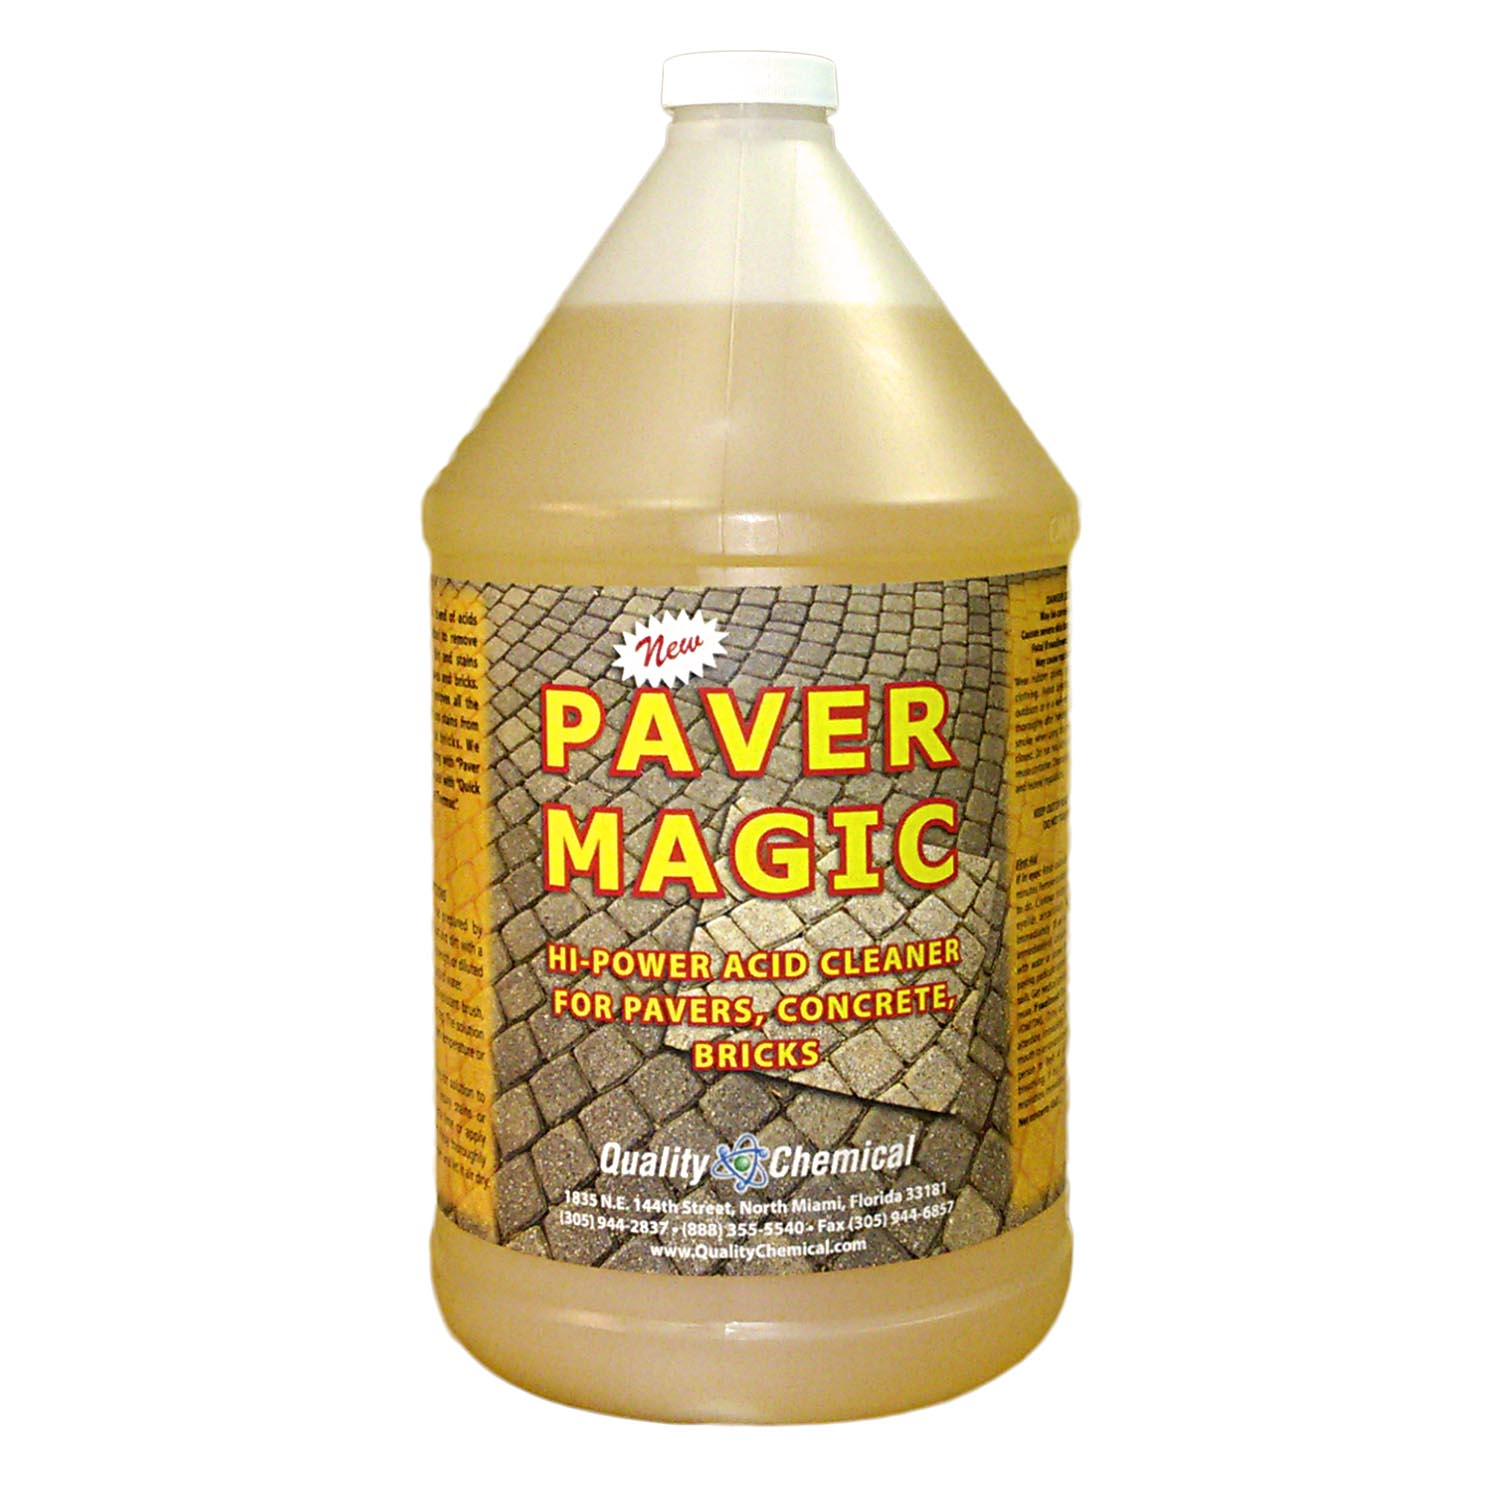 Paver Magic